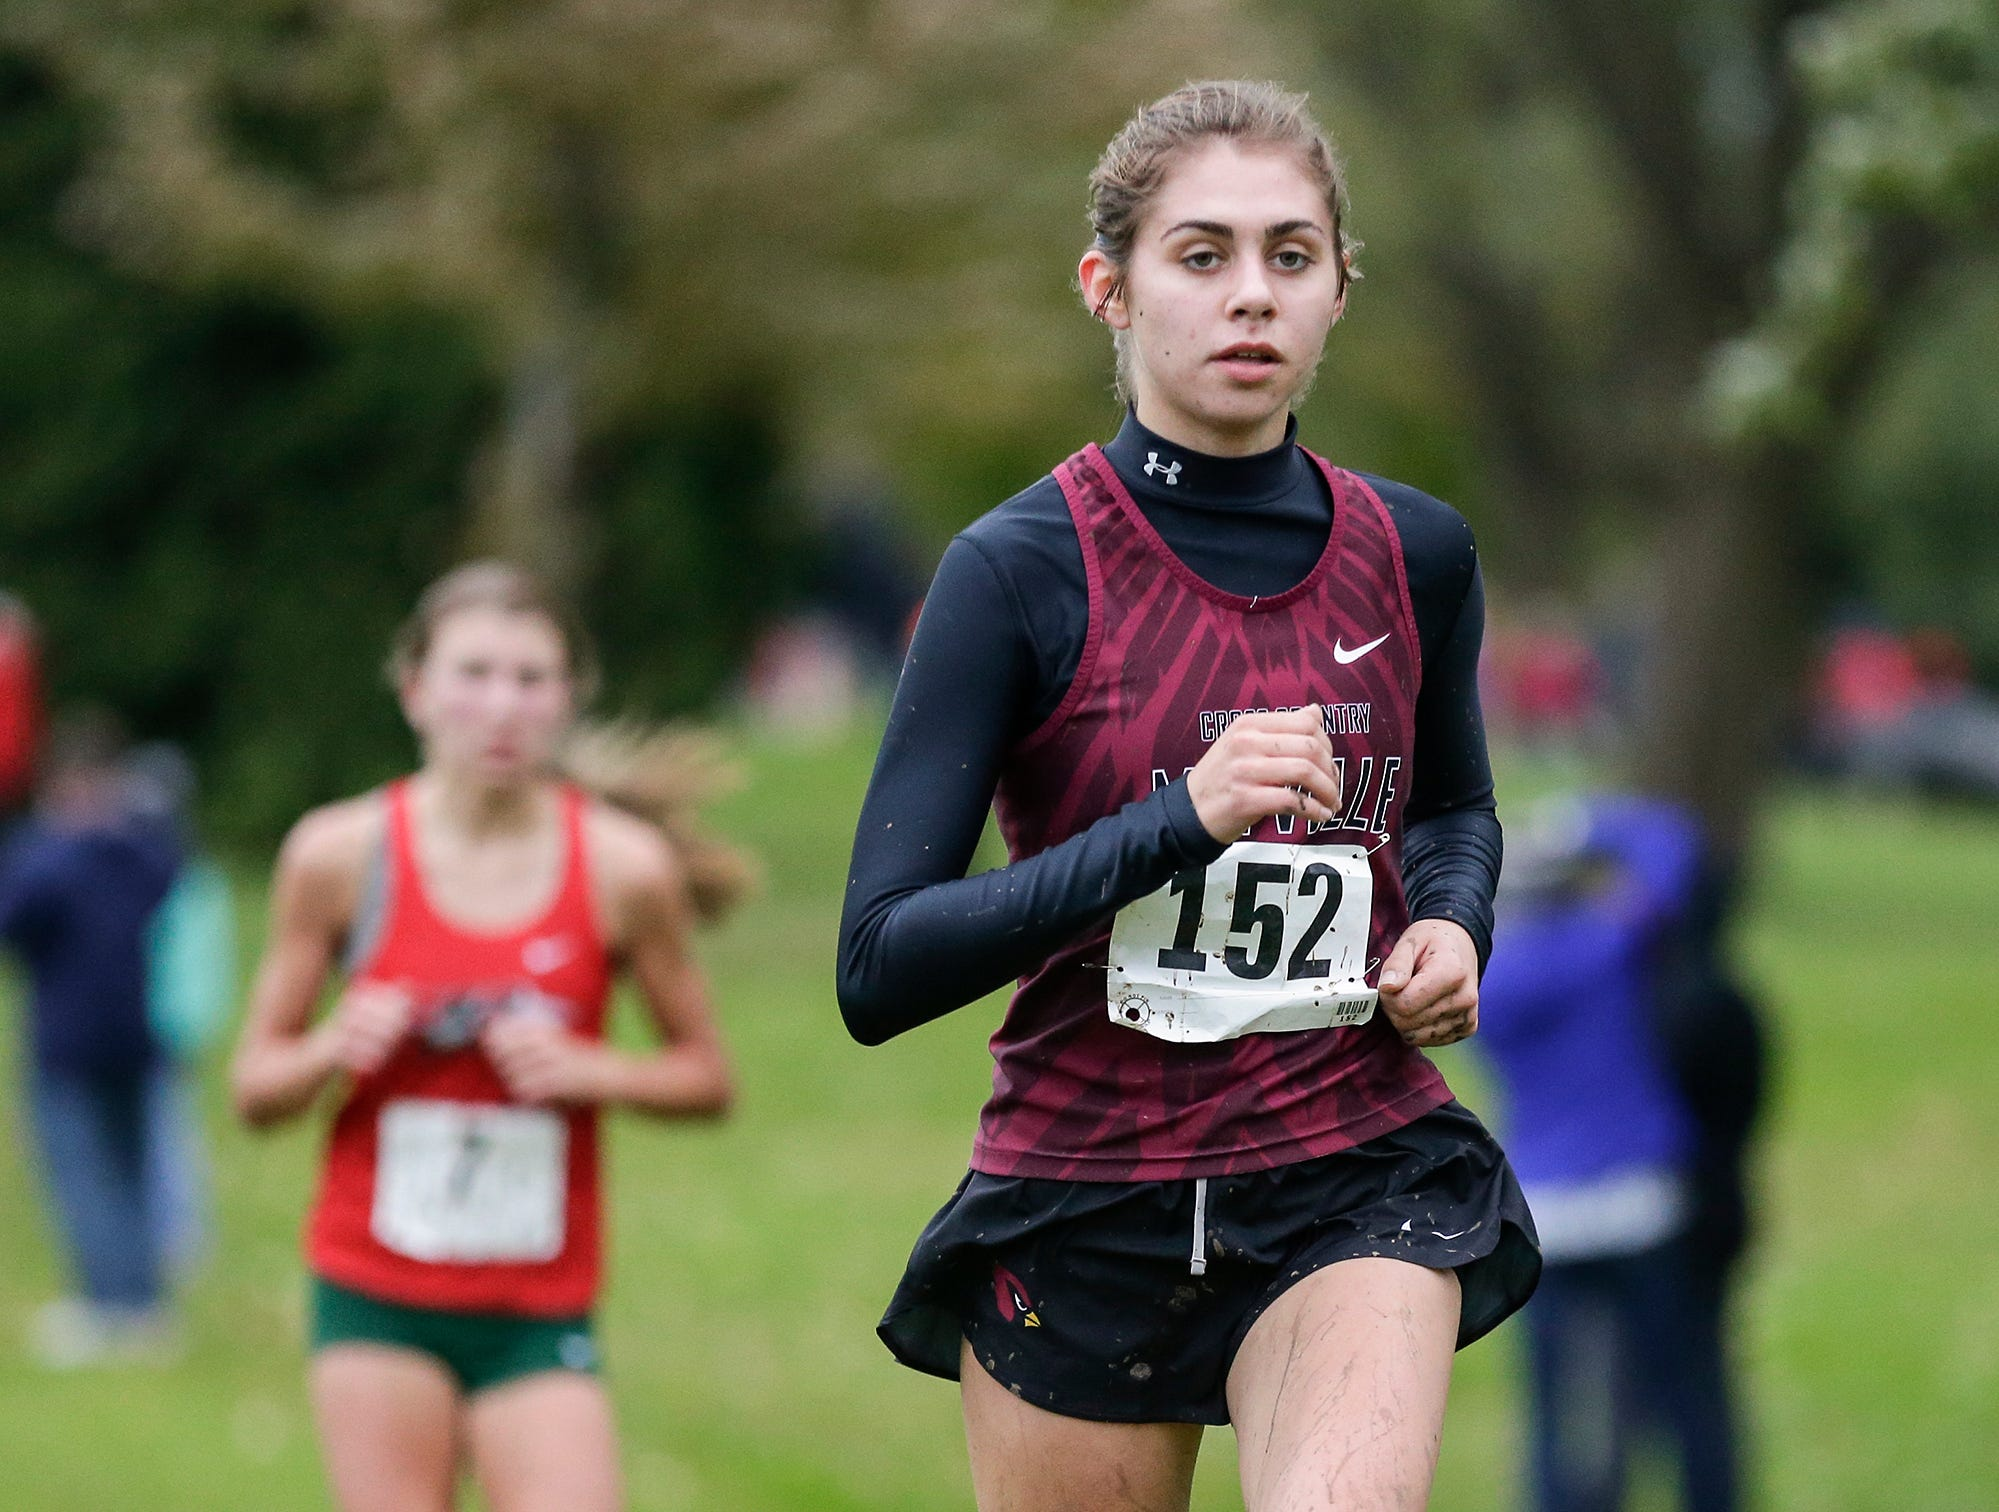 Mayville High School's Mallory Firari runs in the WIAA Division two Mayville sectional cross country meet at the Mayville golf course Friday, October 19, 2018. Doug Raflik/USA TODAY NETWORK-Wisconsin